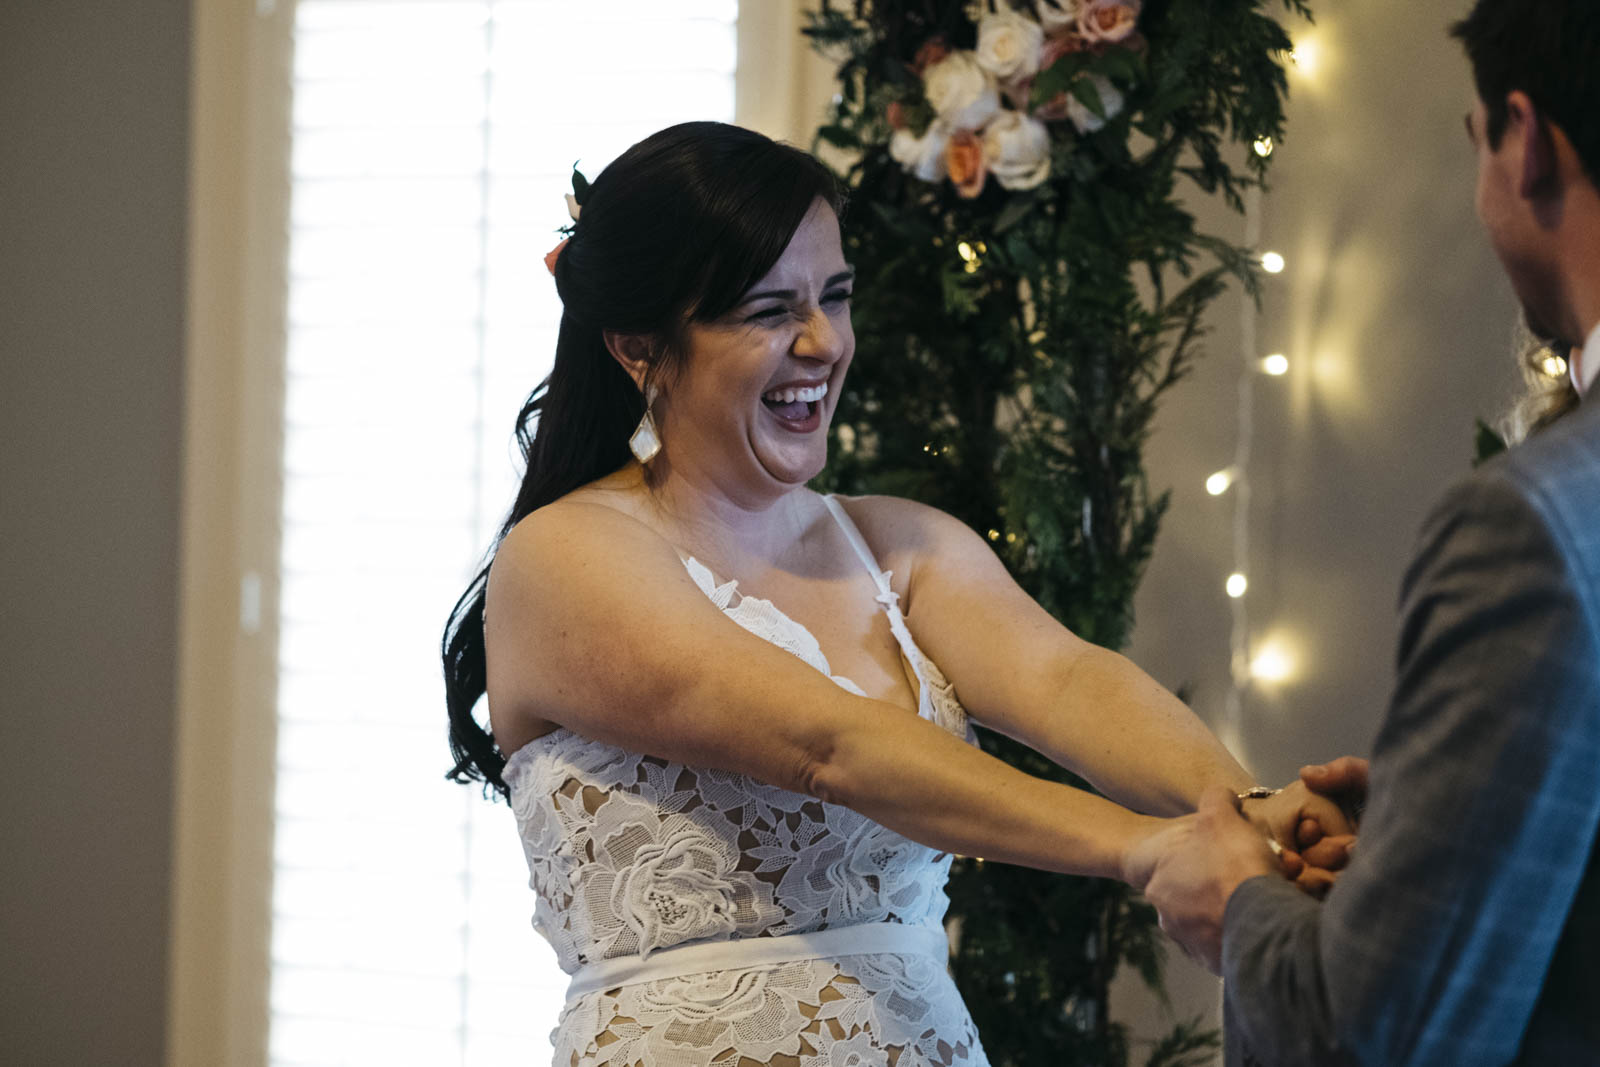 Bride laughing during her wedding ceremony.